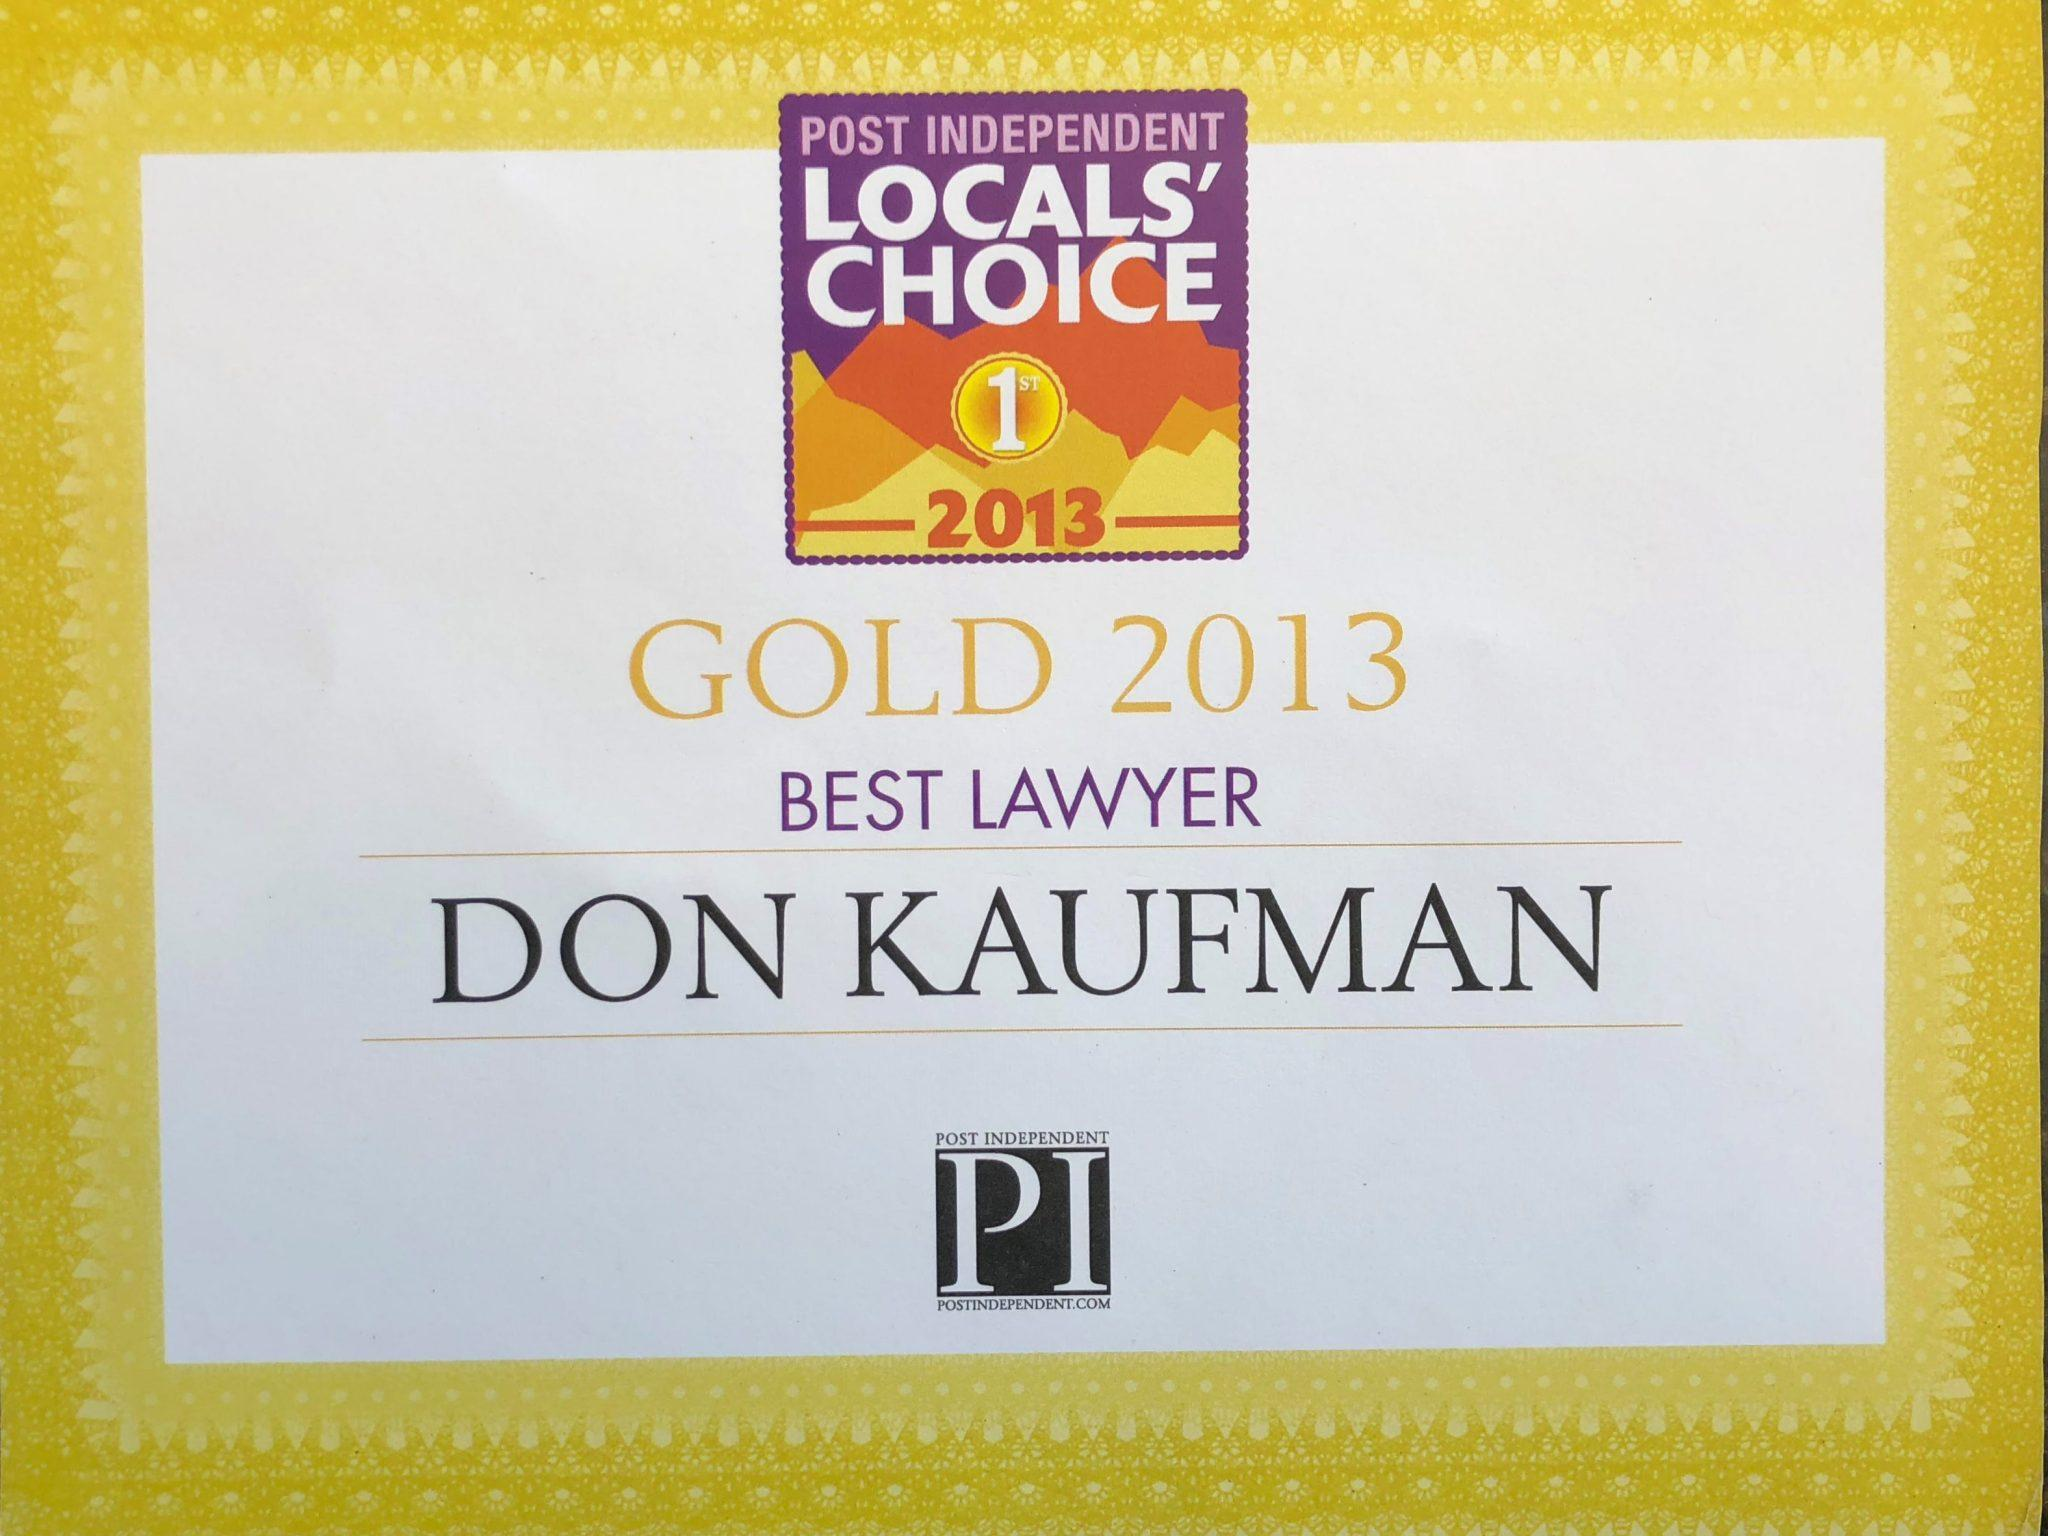 Don Kaufman Wins 2013 Locals Choice Award